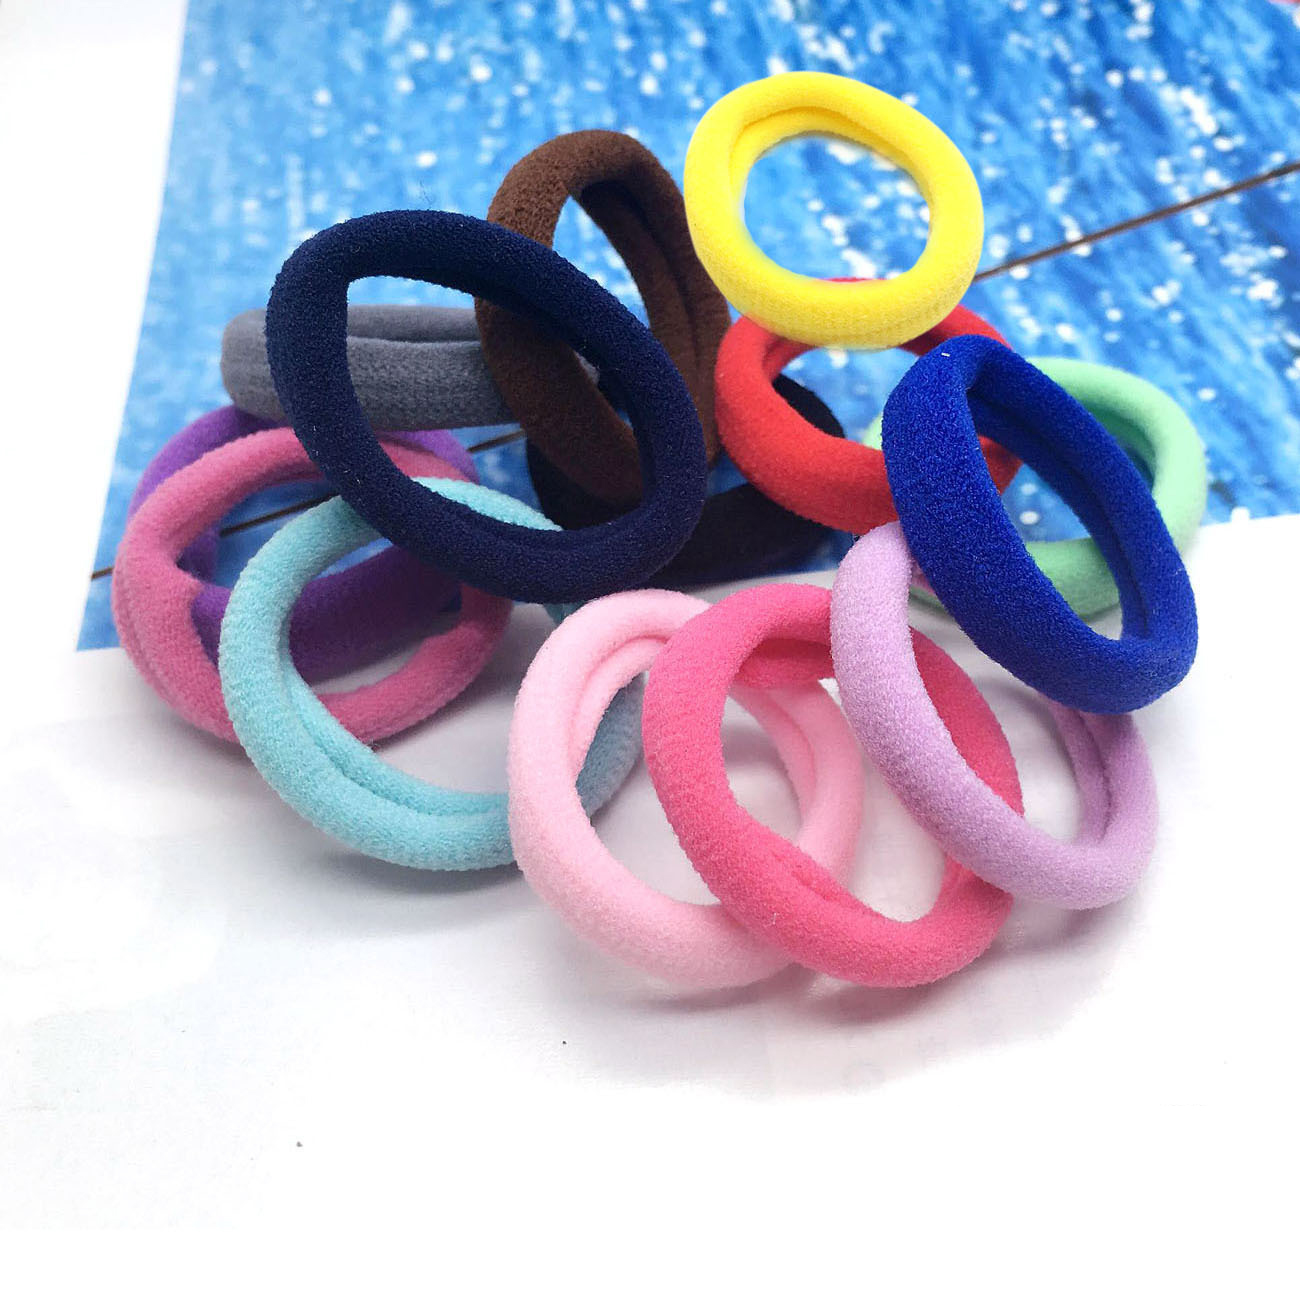 3cm 1pc Headwear Hair Accessories Rubber Rope Elastic Hair Bands For Girls Kids Children Baby Charms Tie Gum3cm 1pc Headwear Hair Accessories Rubber Rope Elastic Hair Bands For Girls Kids Children Baby Charms Tie Gum